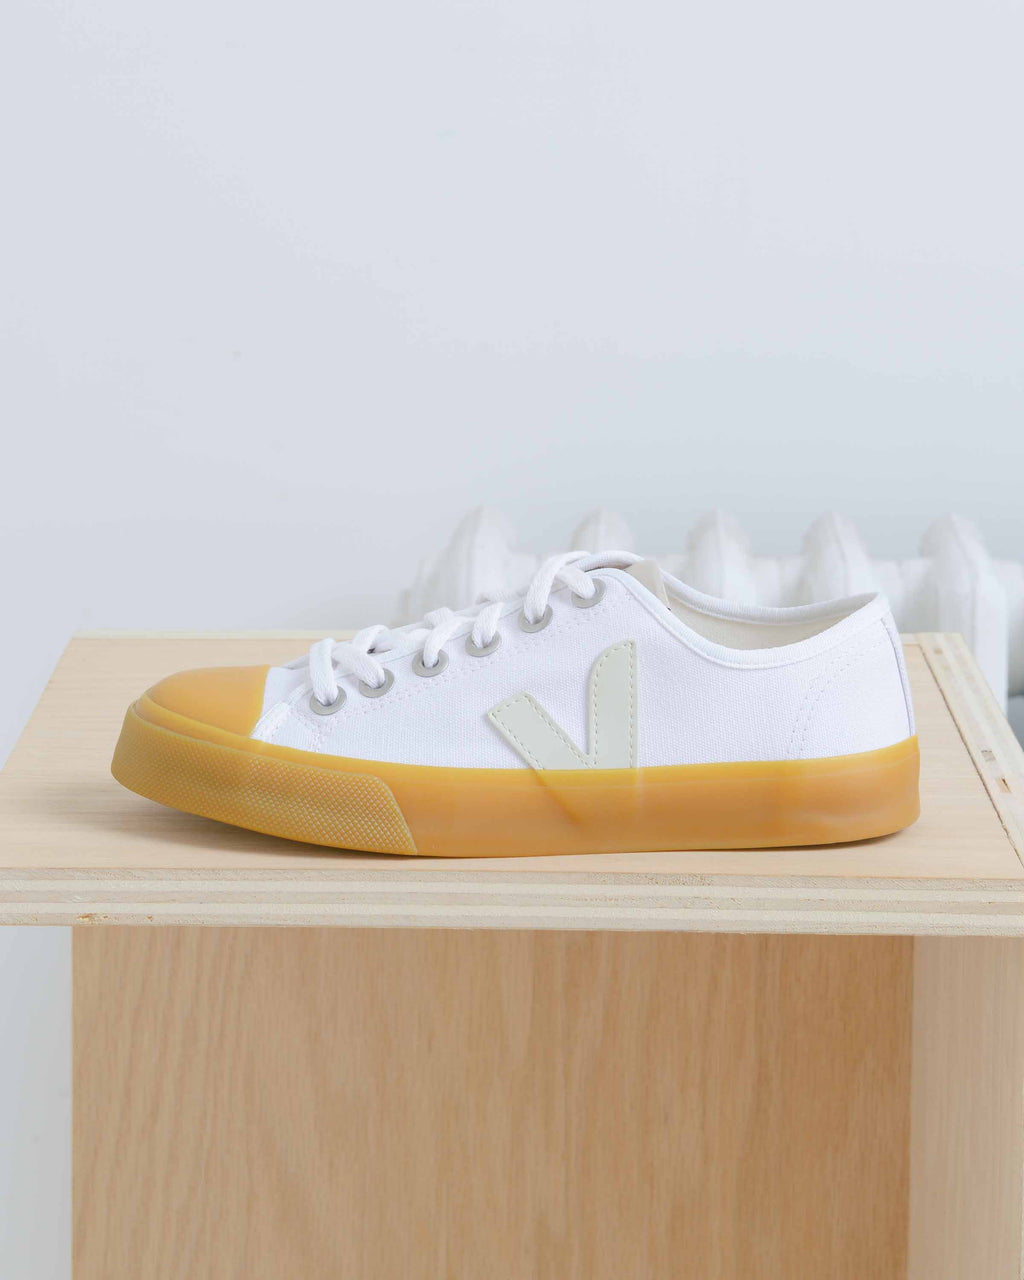 Gum Sole Wata Sneakers